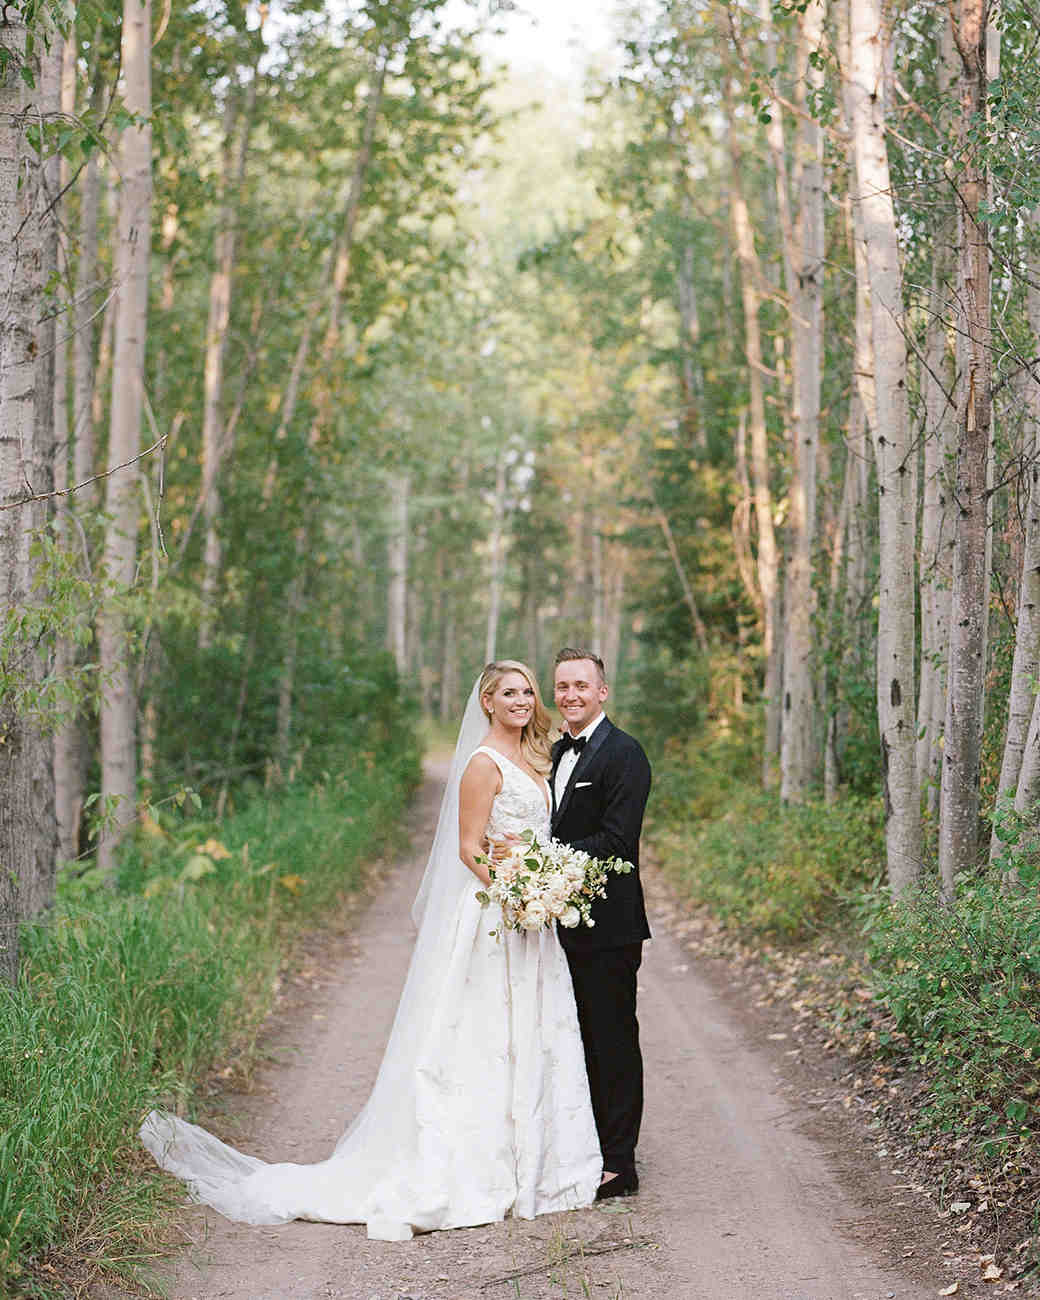 kaitlin jeremy wedding couple on tree-lined path